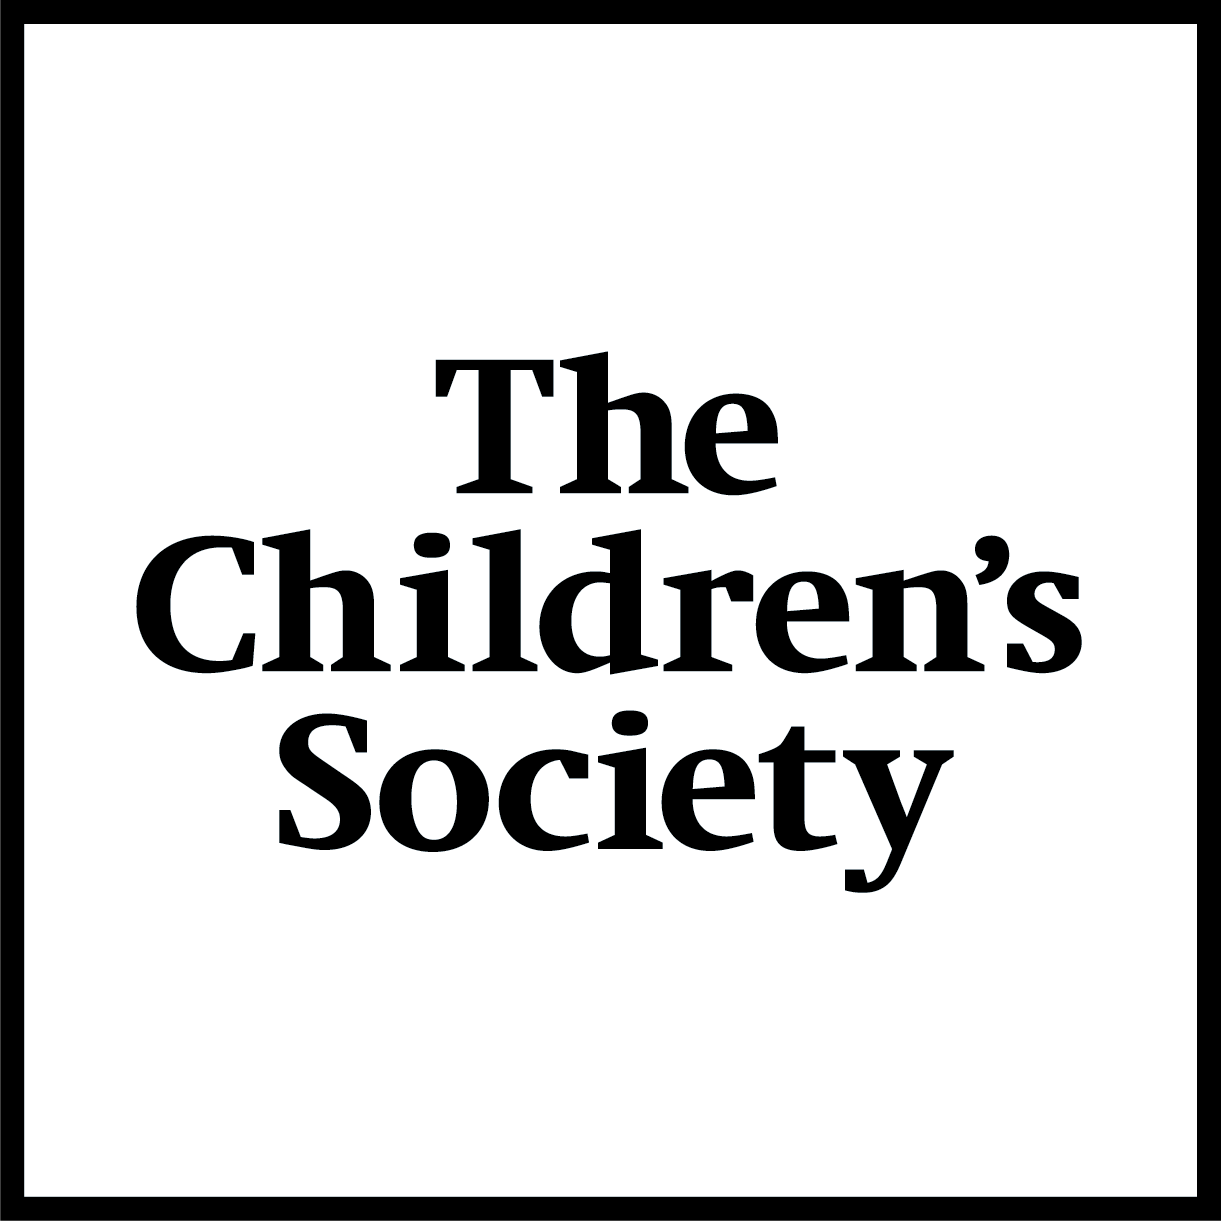 https://www.thisisxyz.com/wp-content/uploads/2021/06/Childrens_Society_Logo.png